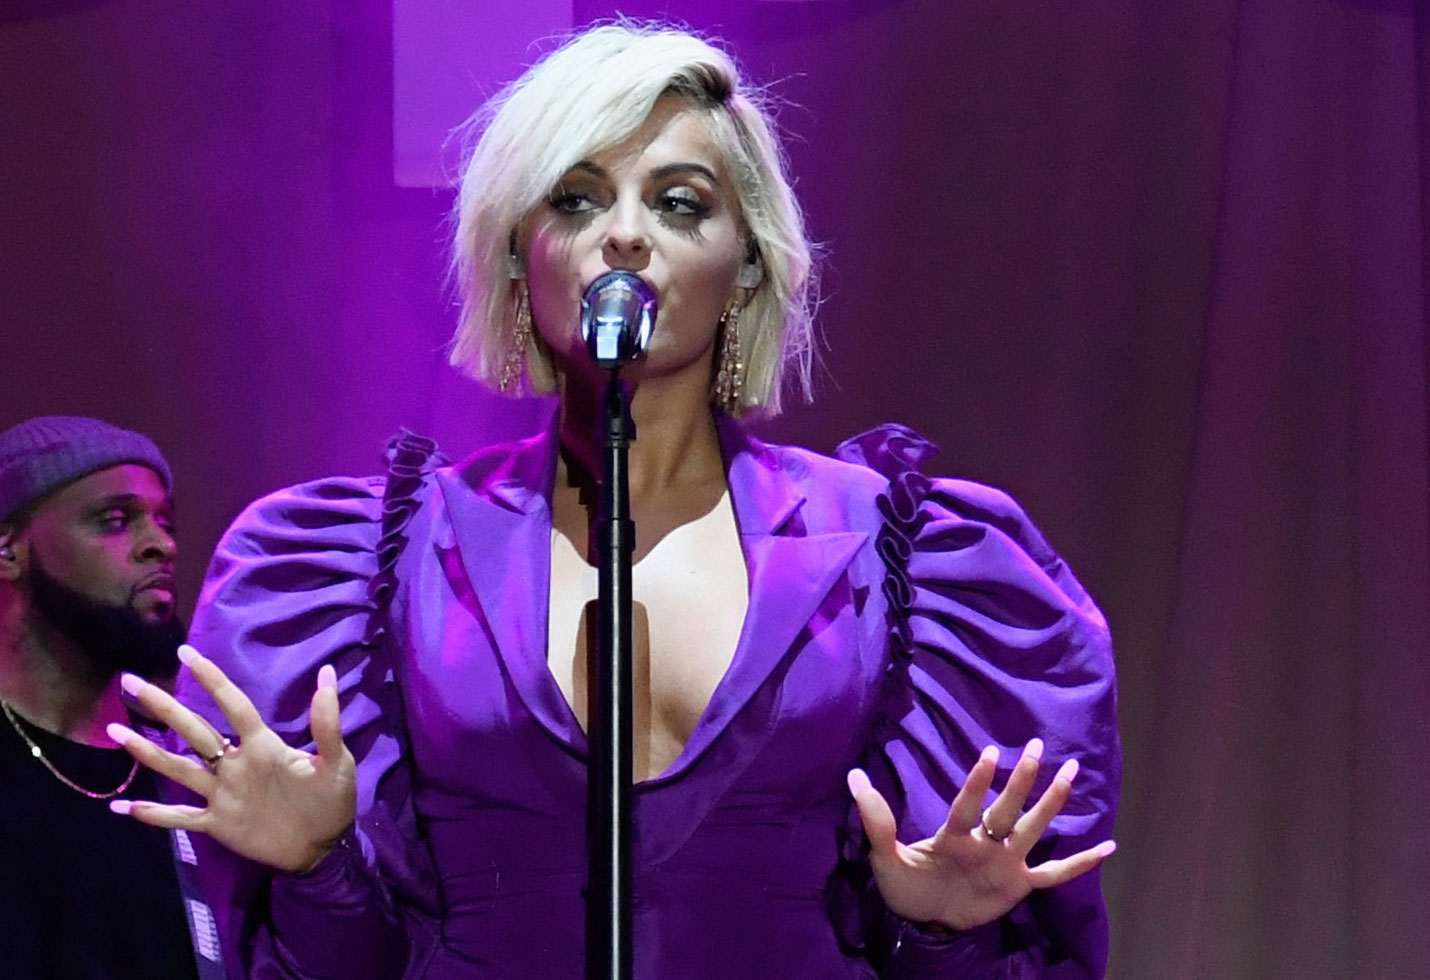 Bebe rexha curses out crowd meant to be sing along grammys